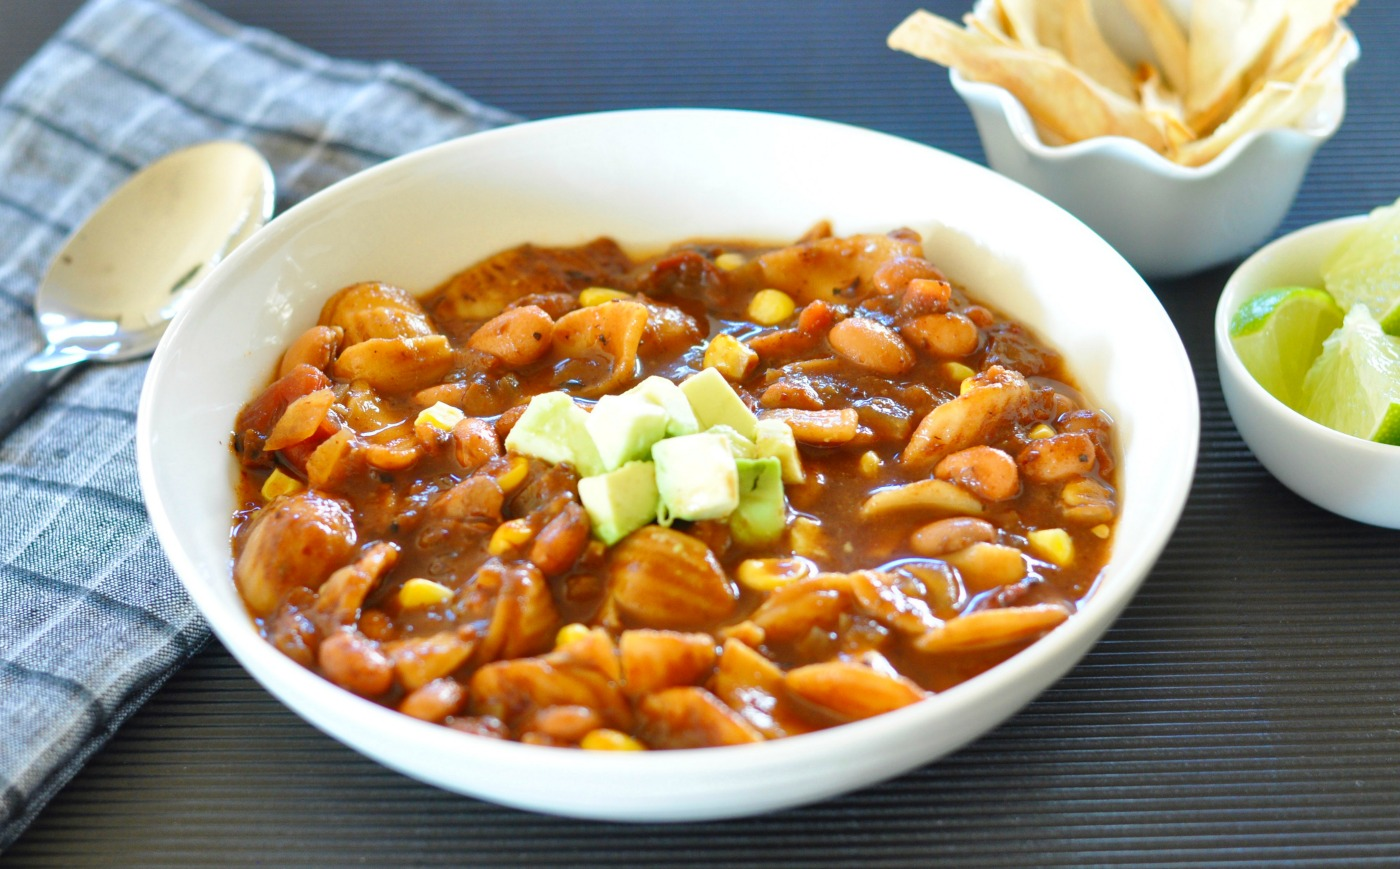 The ancho chile sauce is the flavor bomb that sets this soup apart from your everyday pinto bean pasta soup. It adds a deep color and flavor and just a tiny bit of warming heat. The perfect soup to keep you toasty warm on a cold winter day. (#vegan) ordinaryvegan.net